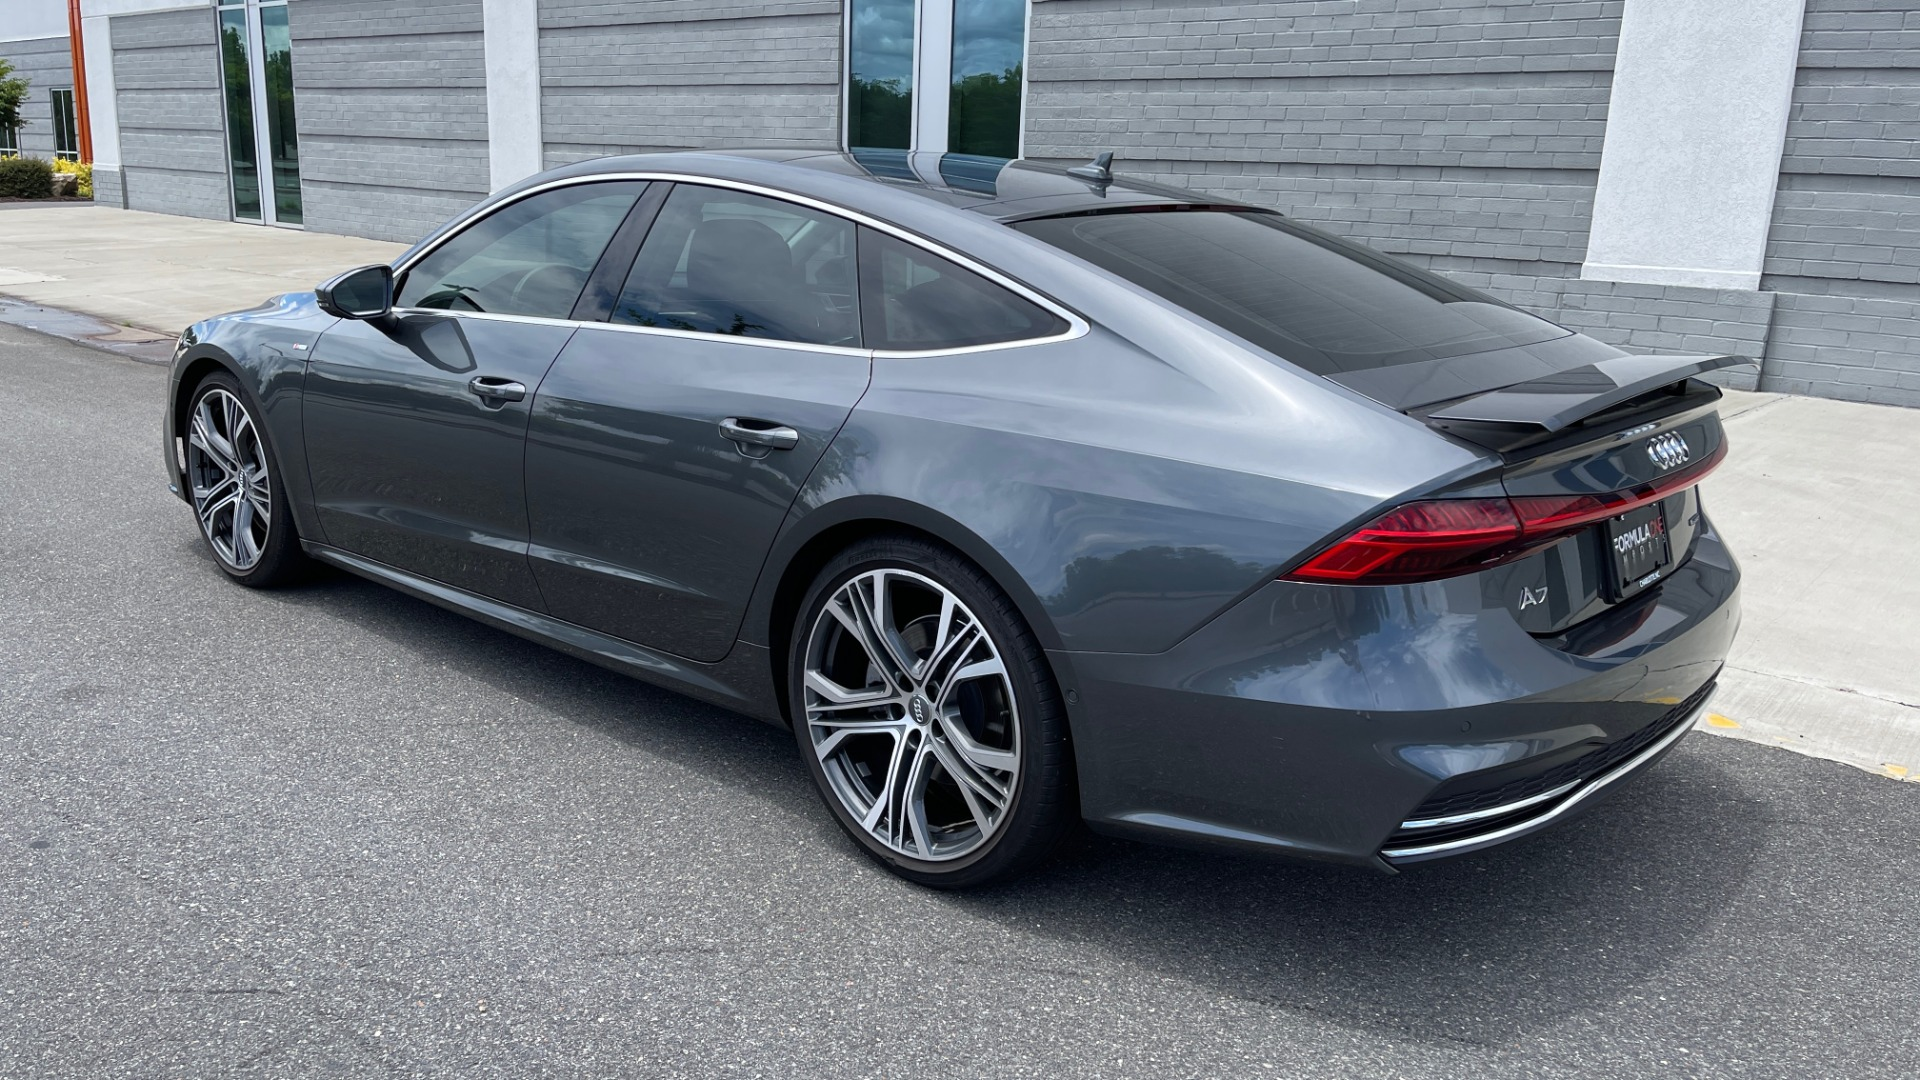 Used 2019 Audi A7 PRESTIGE 55 TFSI 3.0T / NAV / B&O SND / SUNROOF / S-LINE / 21IN WHLS / REAR for sale $66,995 at Formula Imports in Charlotte NC 28227 5